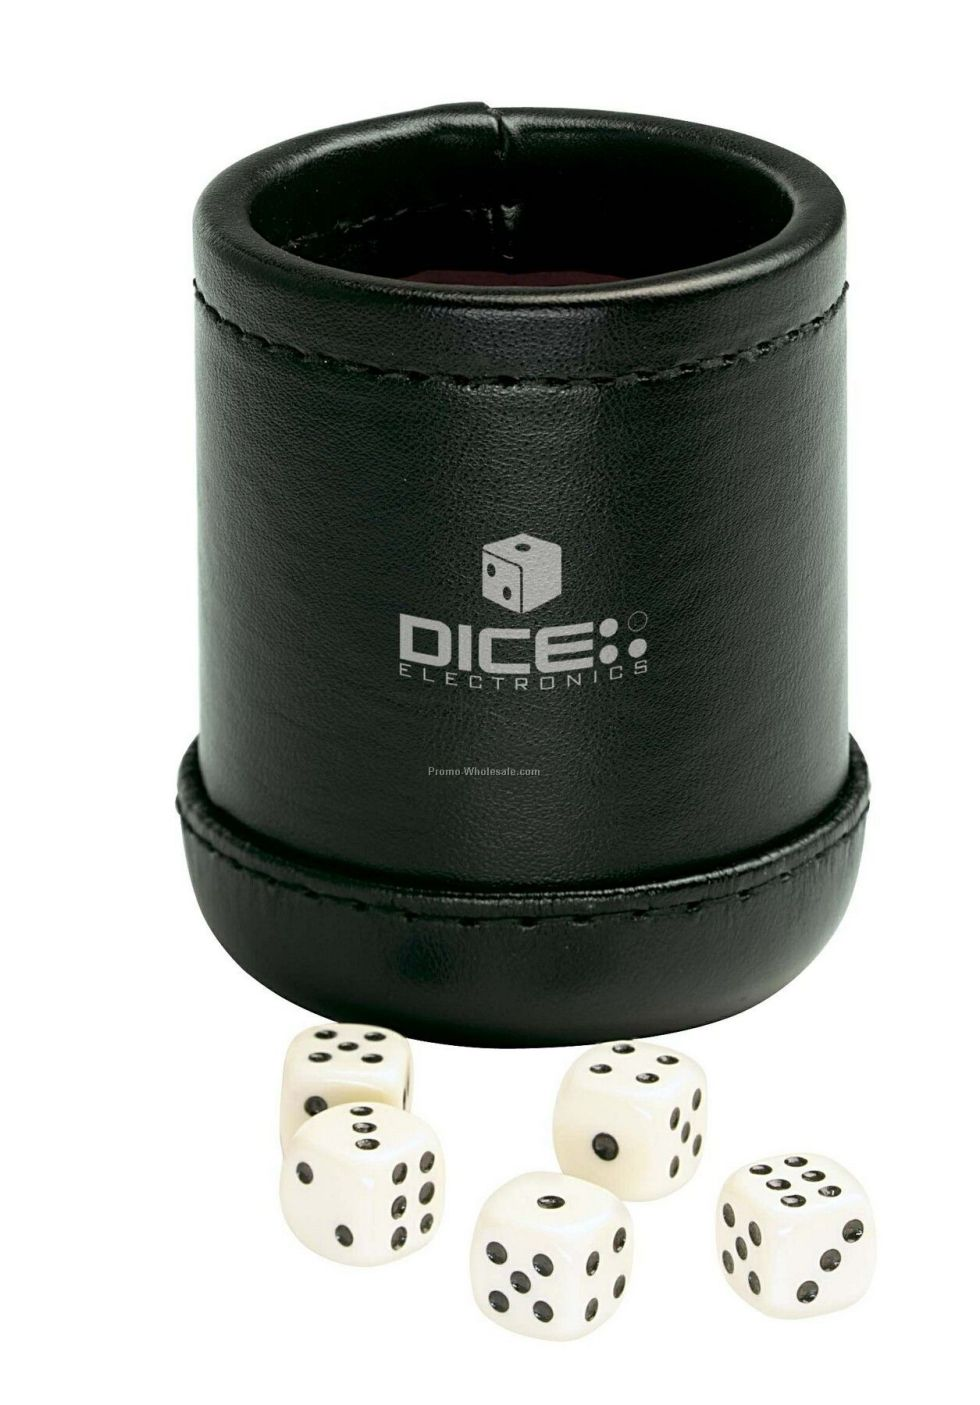 Image Gallery dice cup